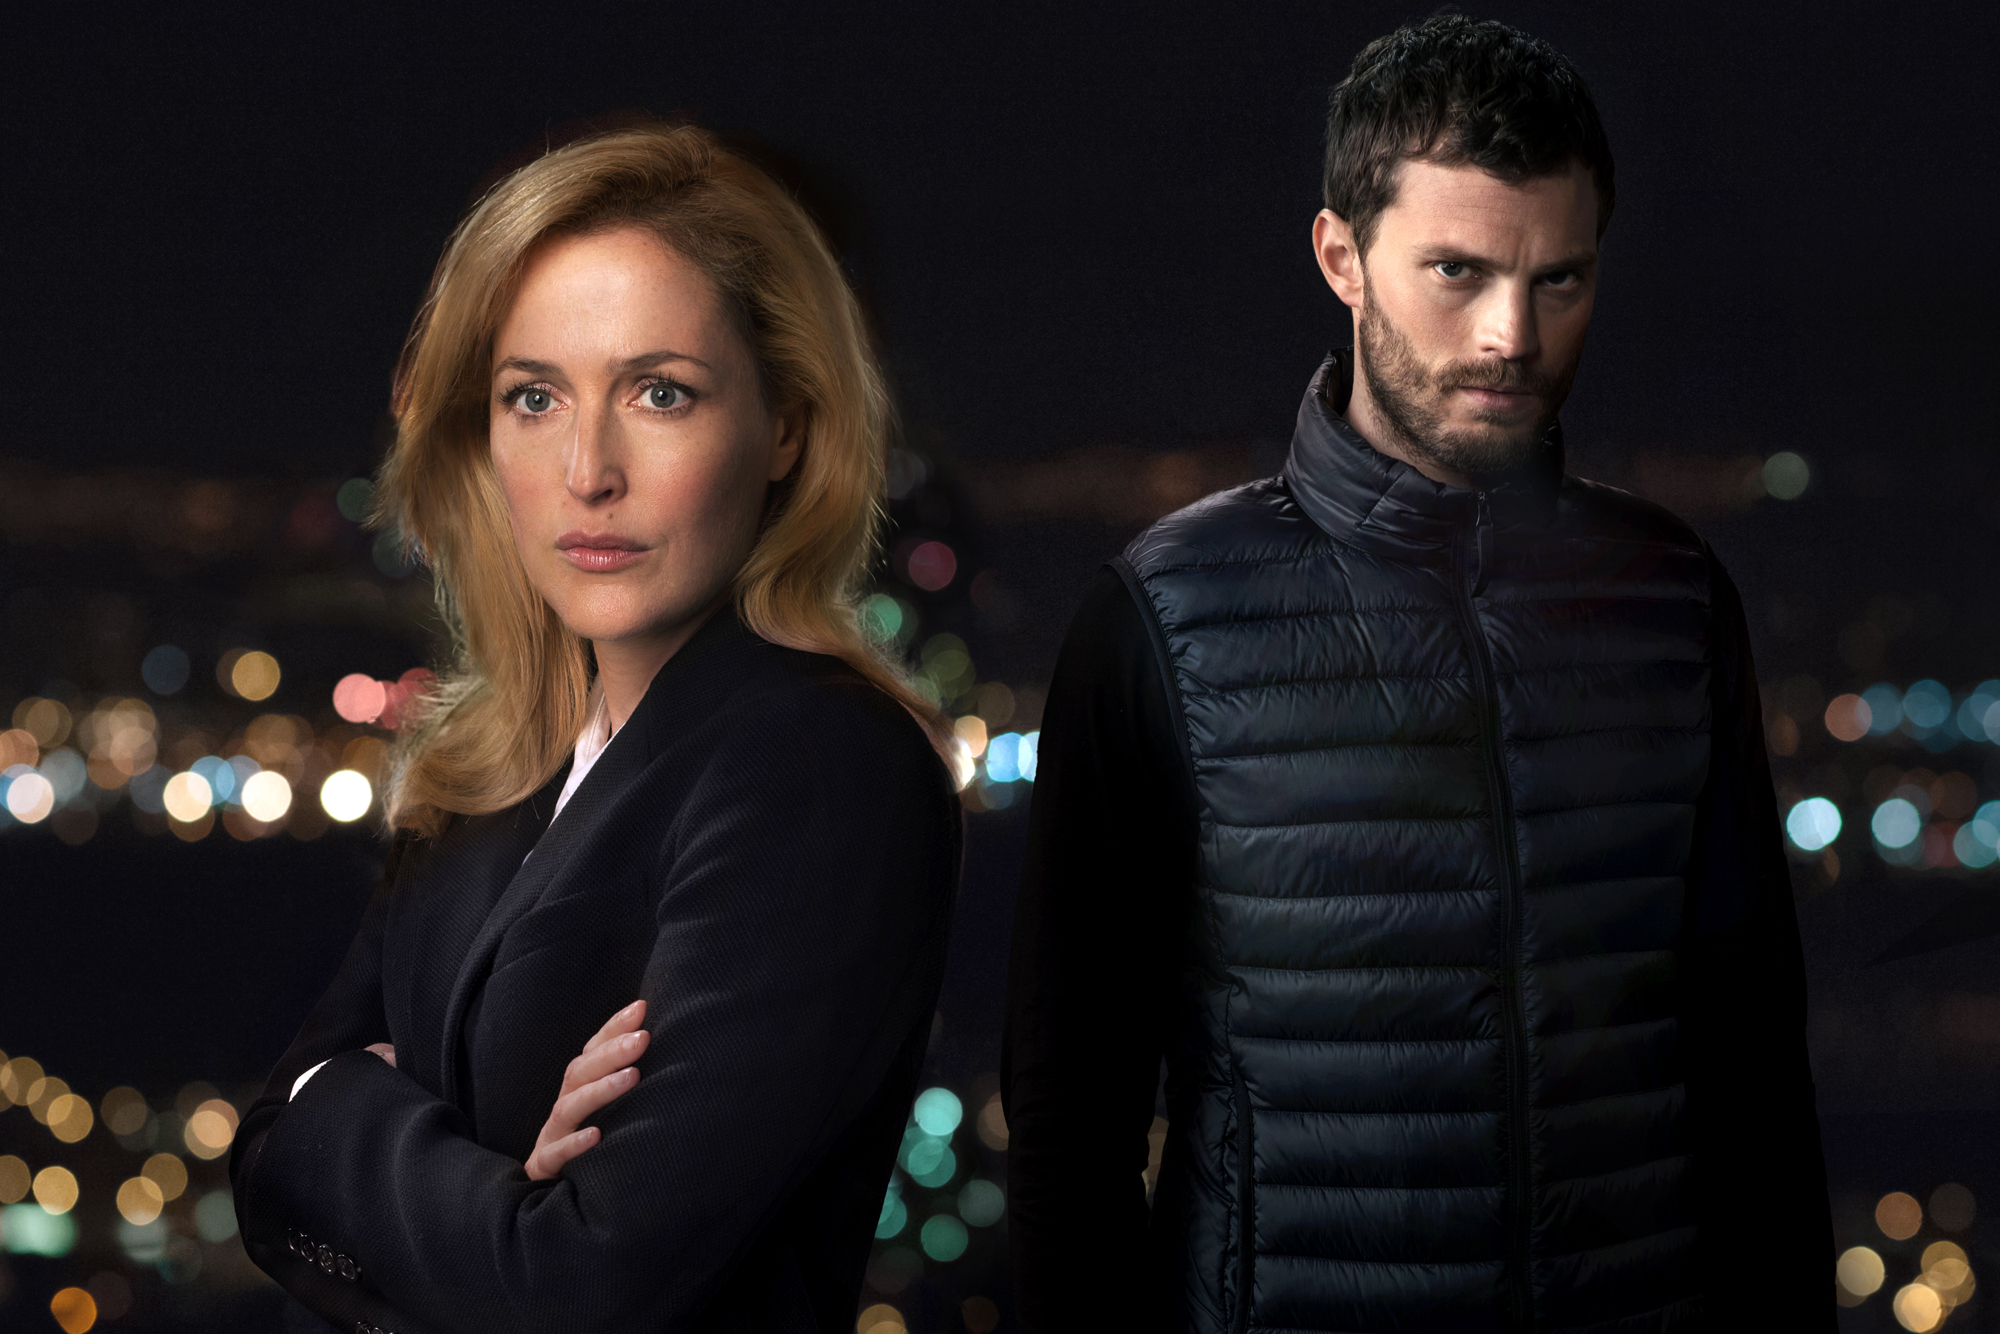 Netflix Review: Season 2 of 'THE FALL' – A Stately Serial-Killer